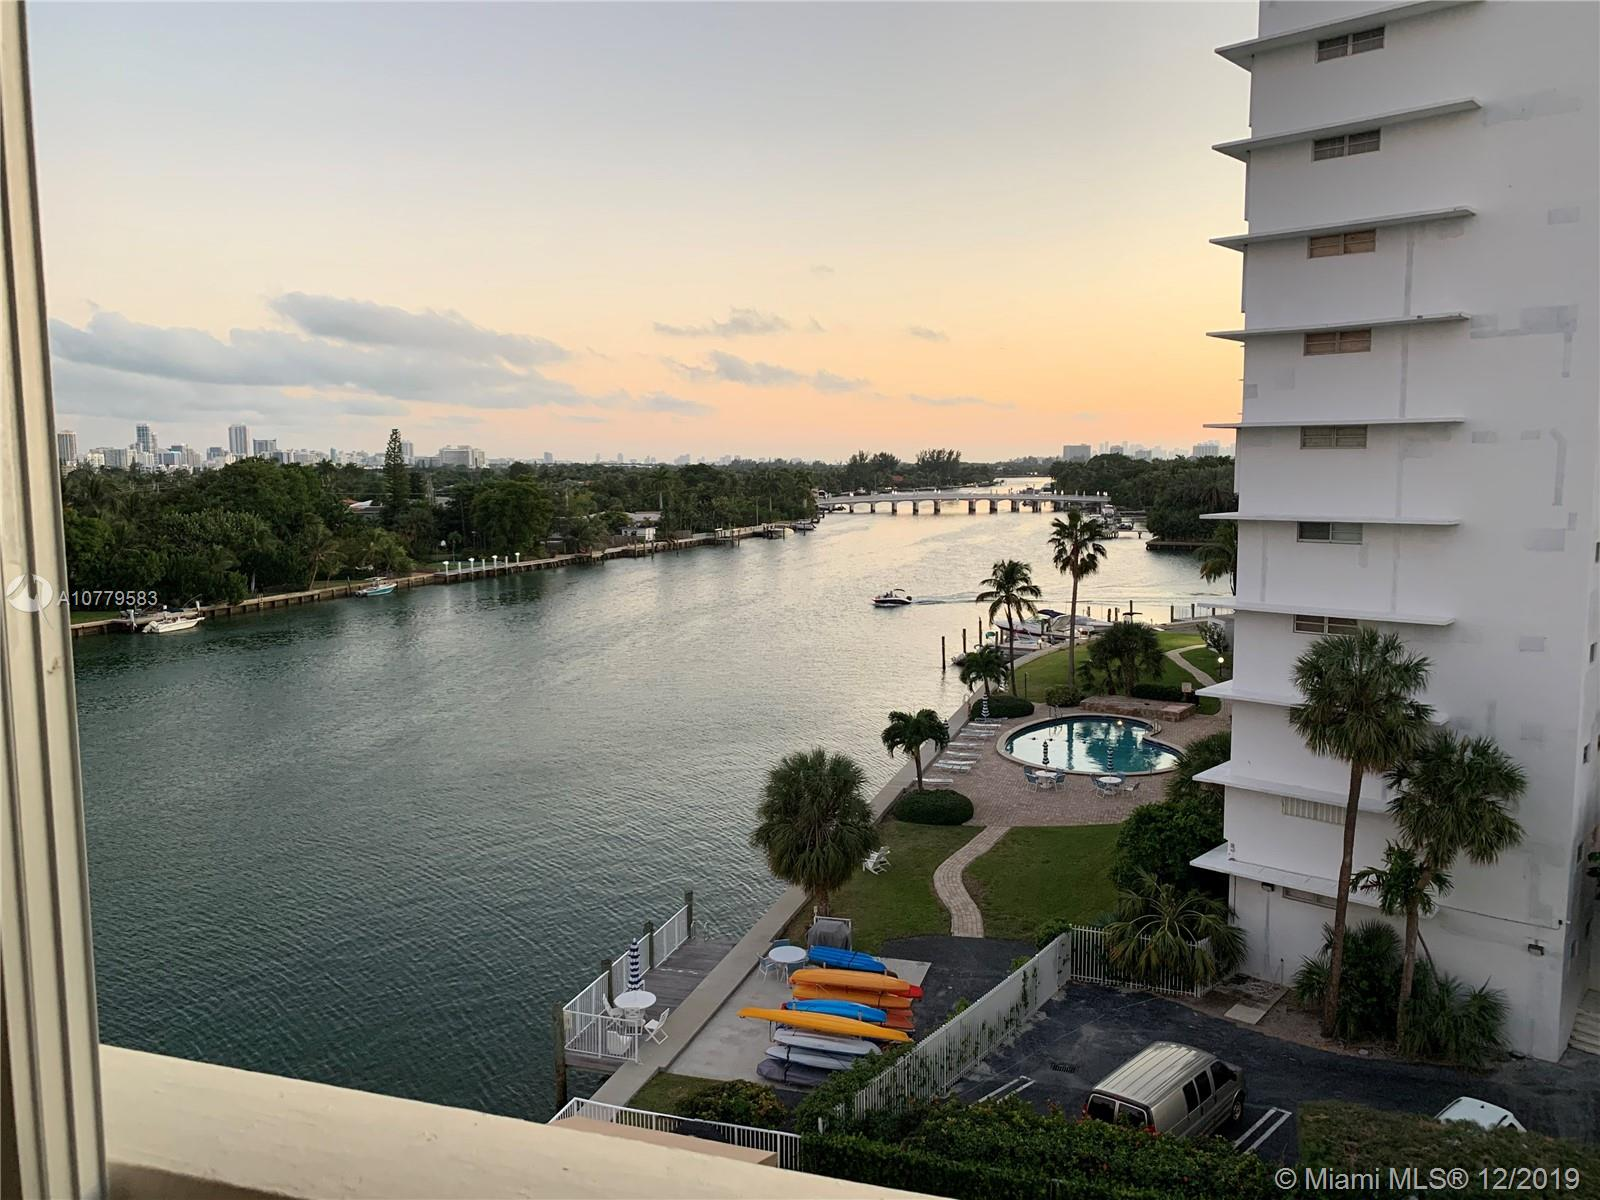 Waterfront condo in Bay Harbor. Overlooking the iconic Indian Creek Waterway & bridge. Amenities include heated pool, gym, and private parking. Walking distance to beach, Bal Harbor shops & restaurants.